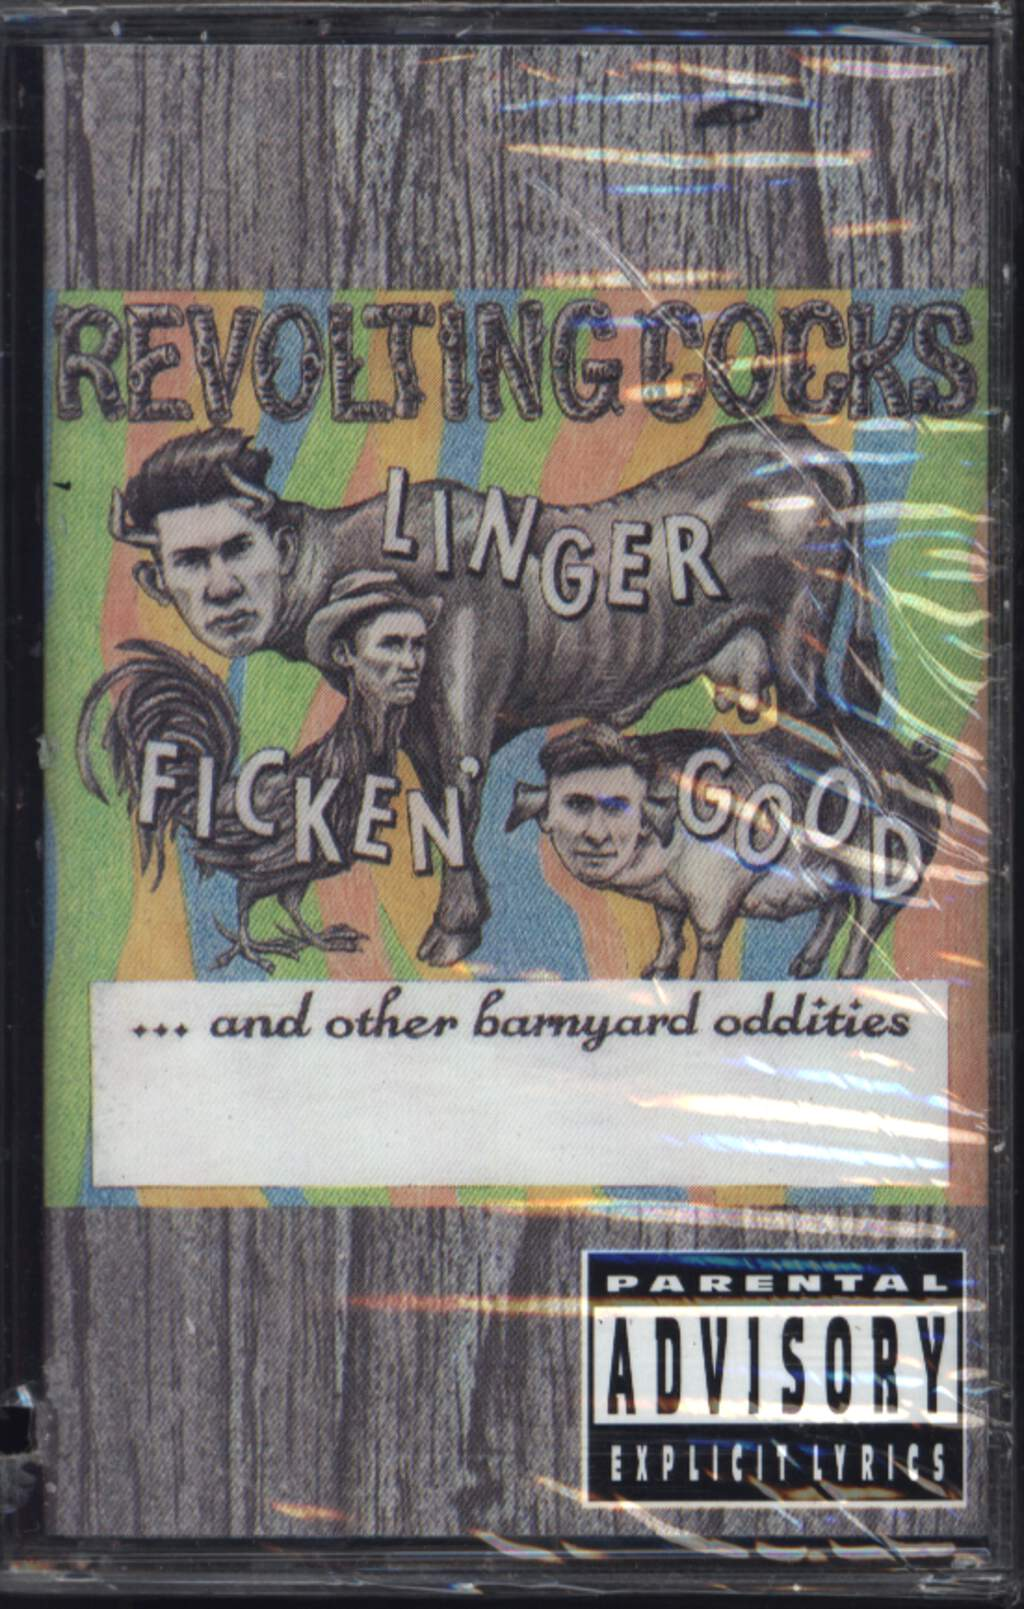 Revolting Cocks: Linger Ficken' Good... And Other Barnyard Oddities, Tape